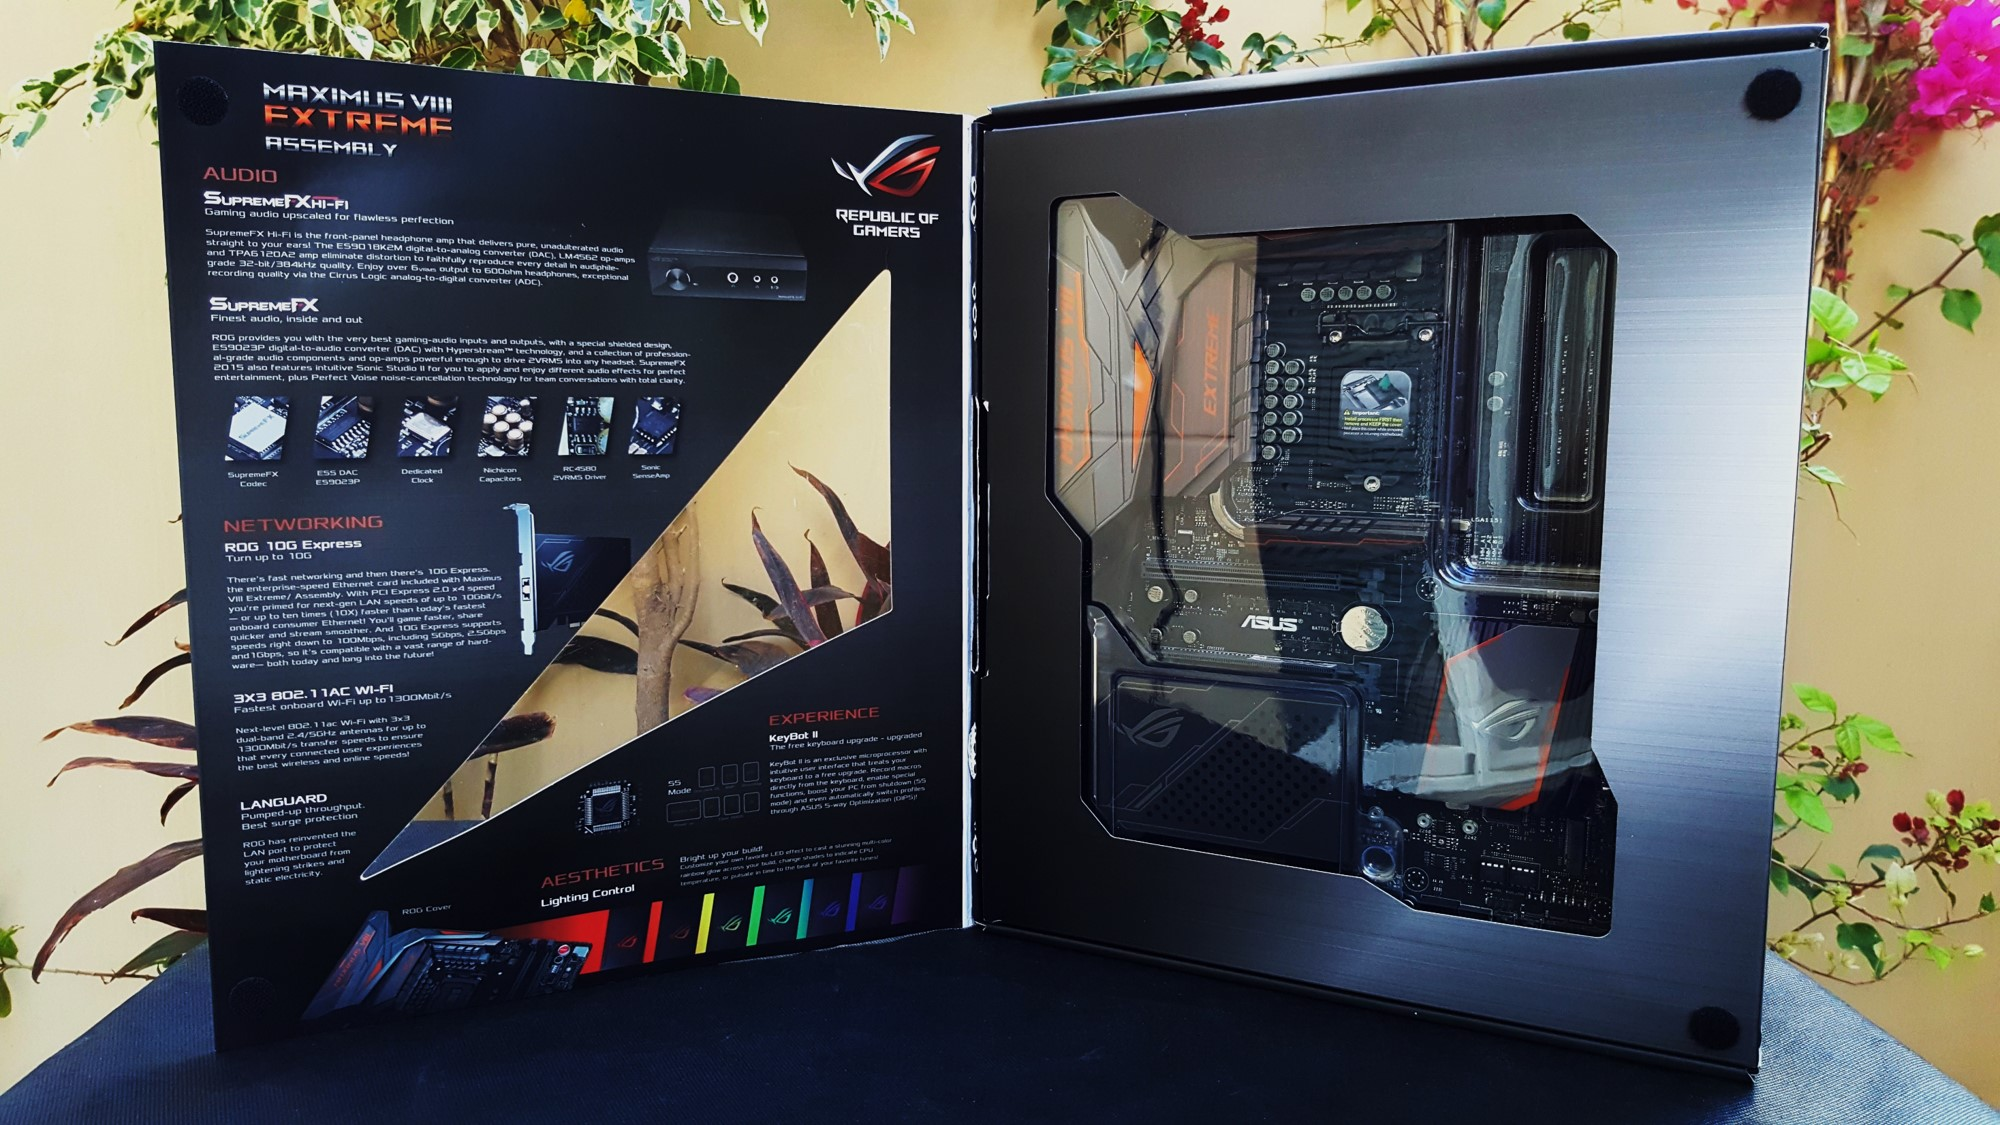 3-Asus Z170 Maximus VIII Extreme Assembly